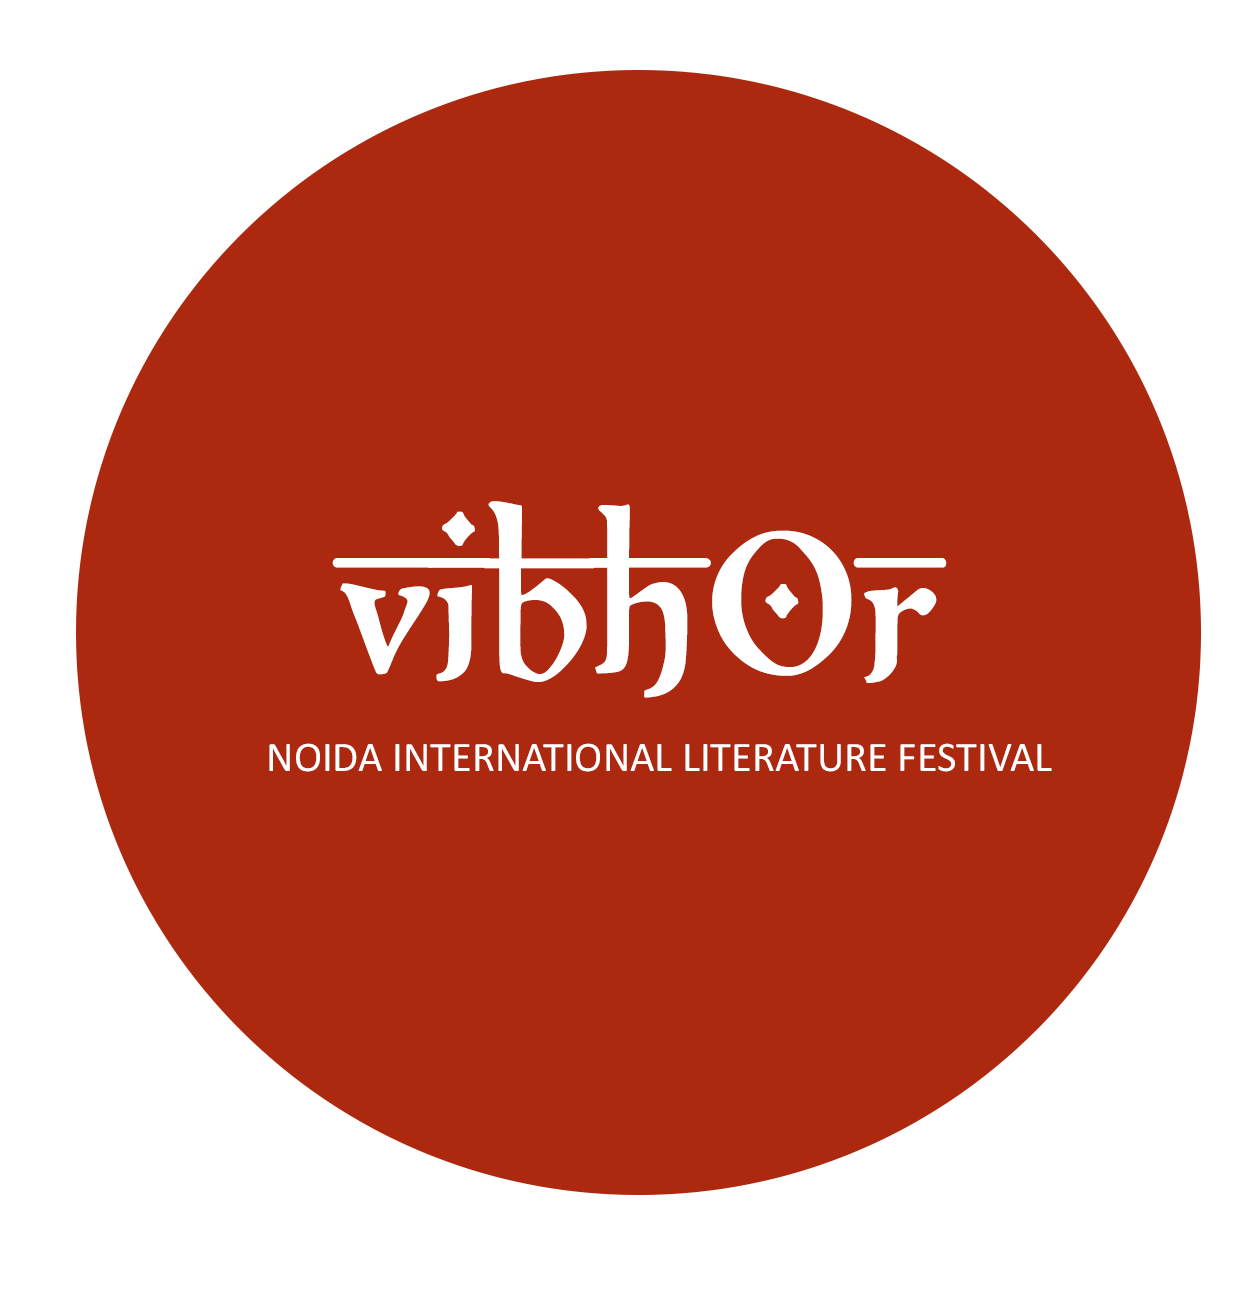 VIBHOR – Noida International Literature Festival